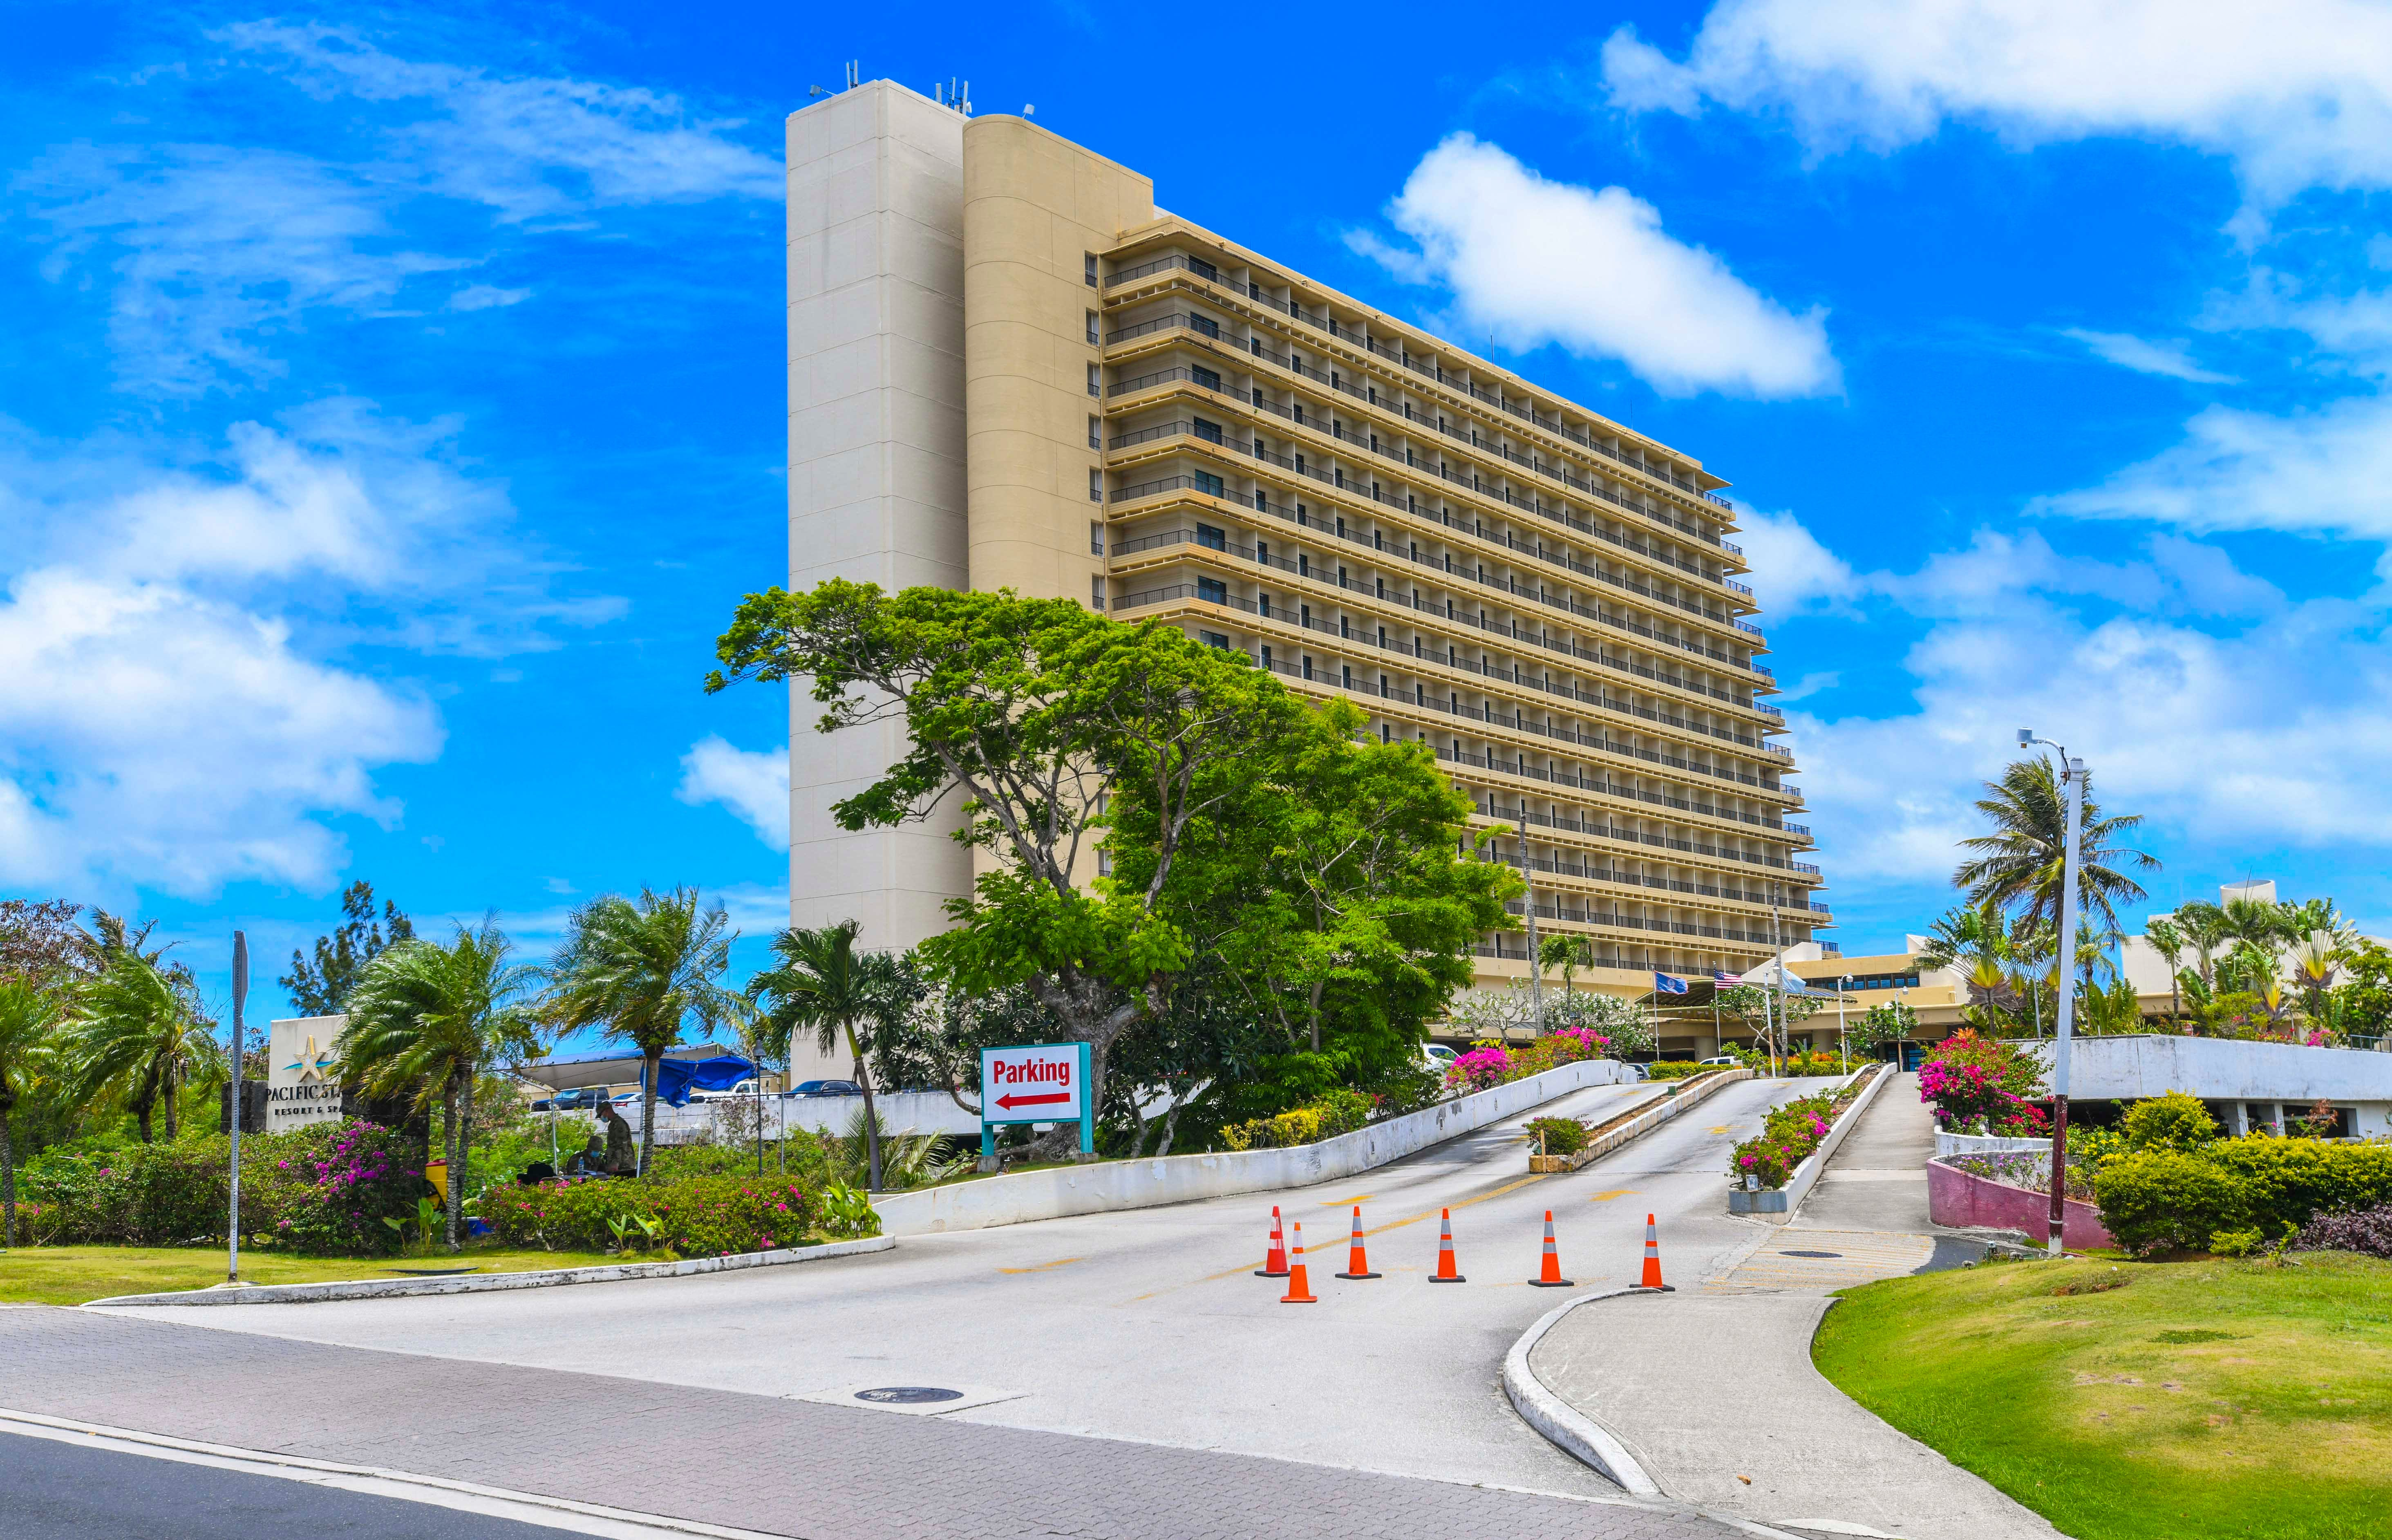 Traffic cones warn drives of a security checkpoint, monitored by Guam National Guard personnel, at the driveway entrance to the Pacific Star Resort & Spa in Tumon on Thursday, April 9, 2020.